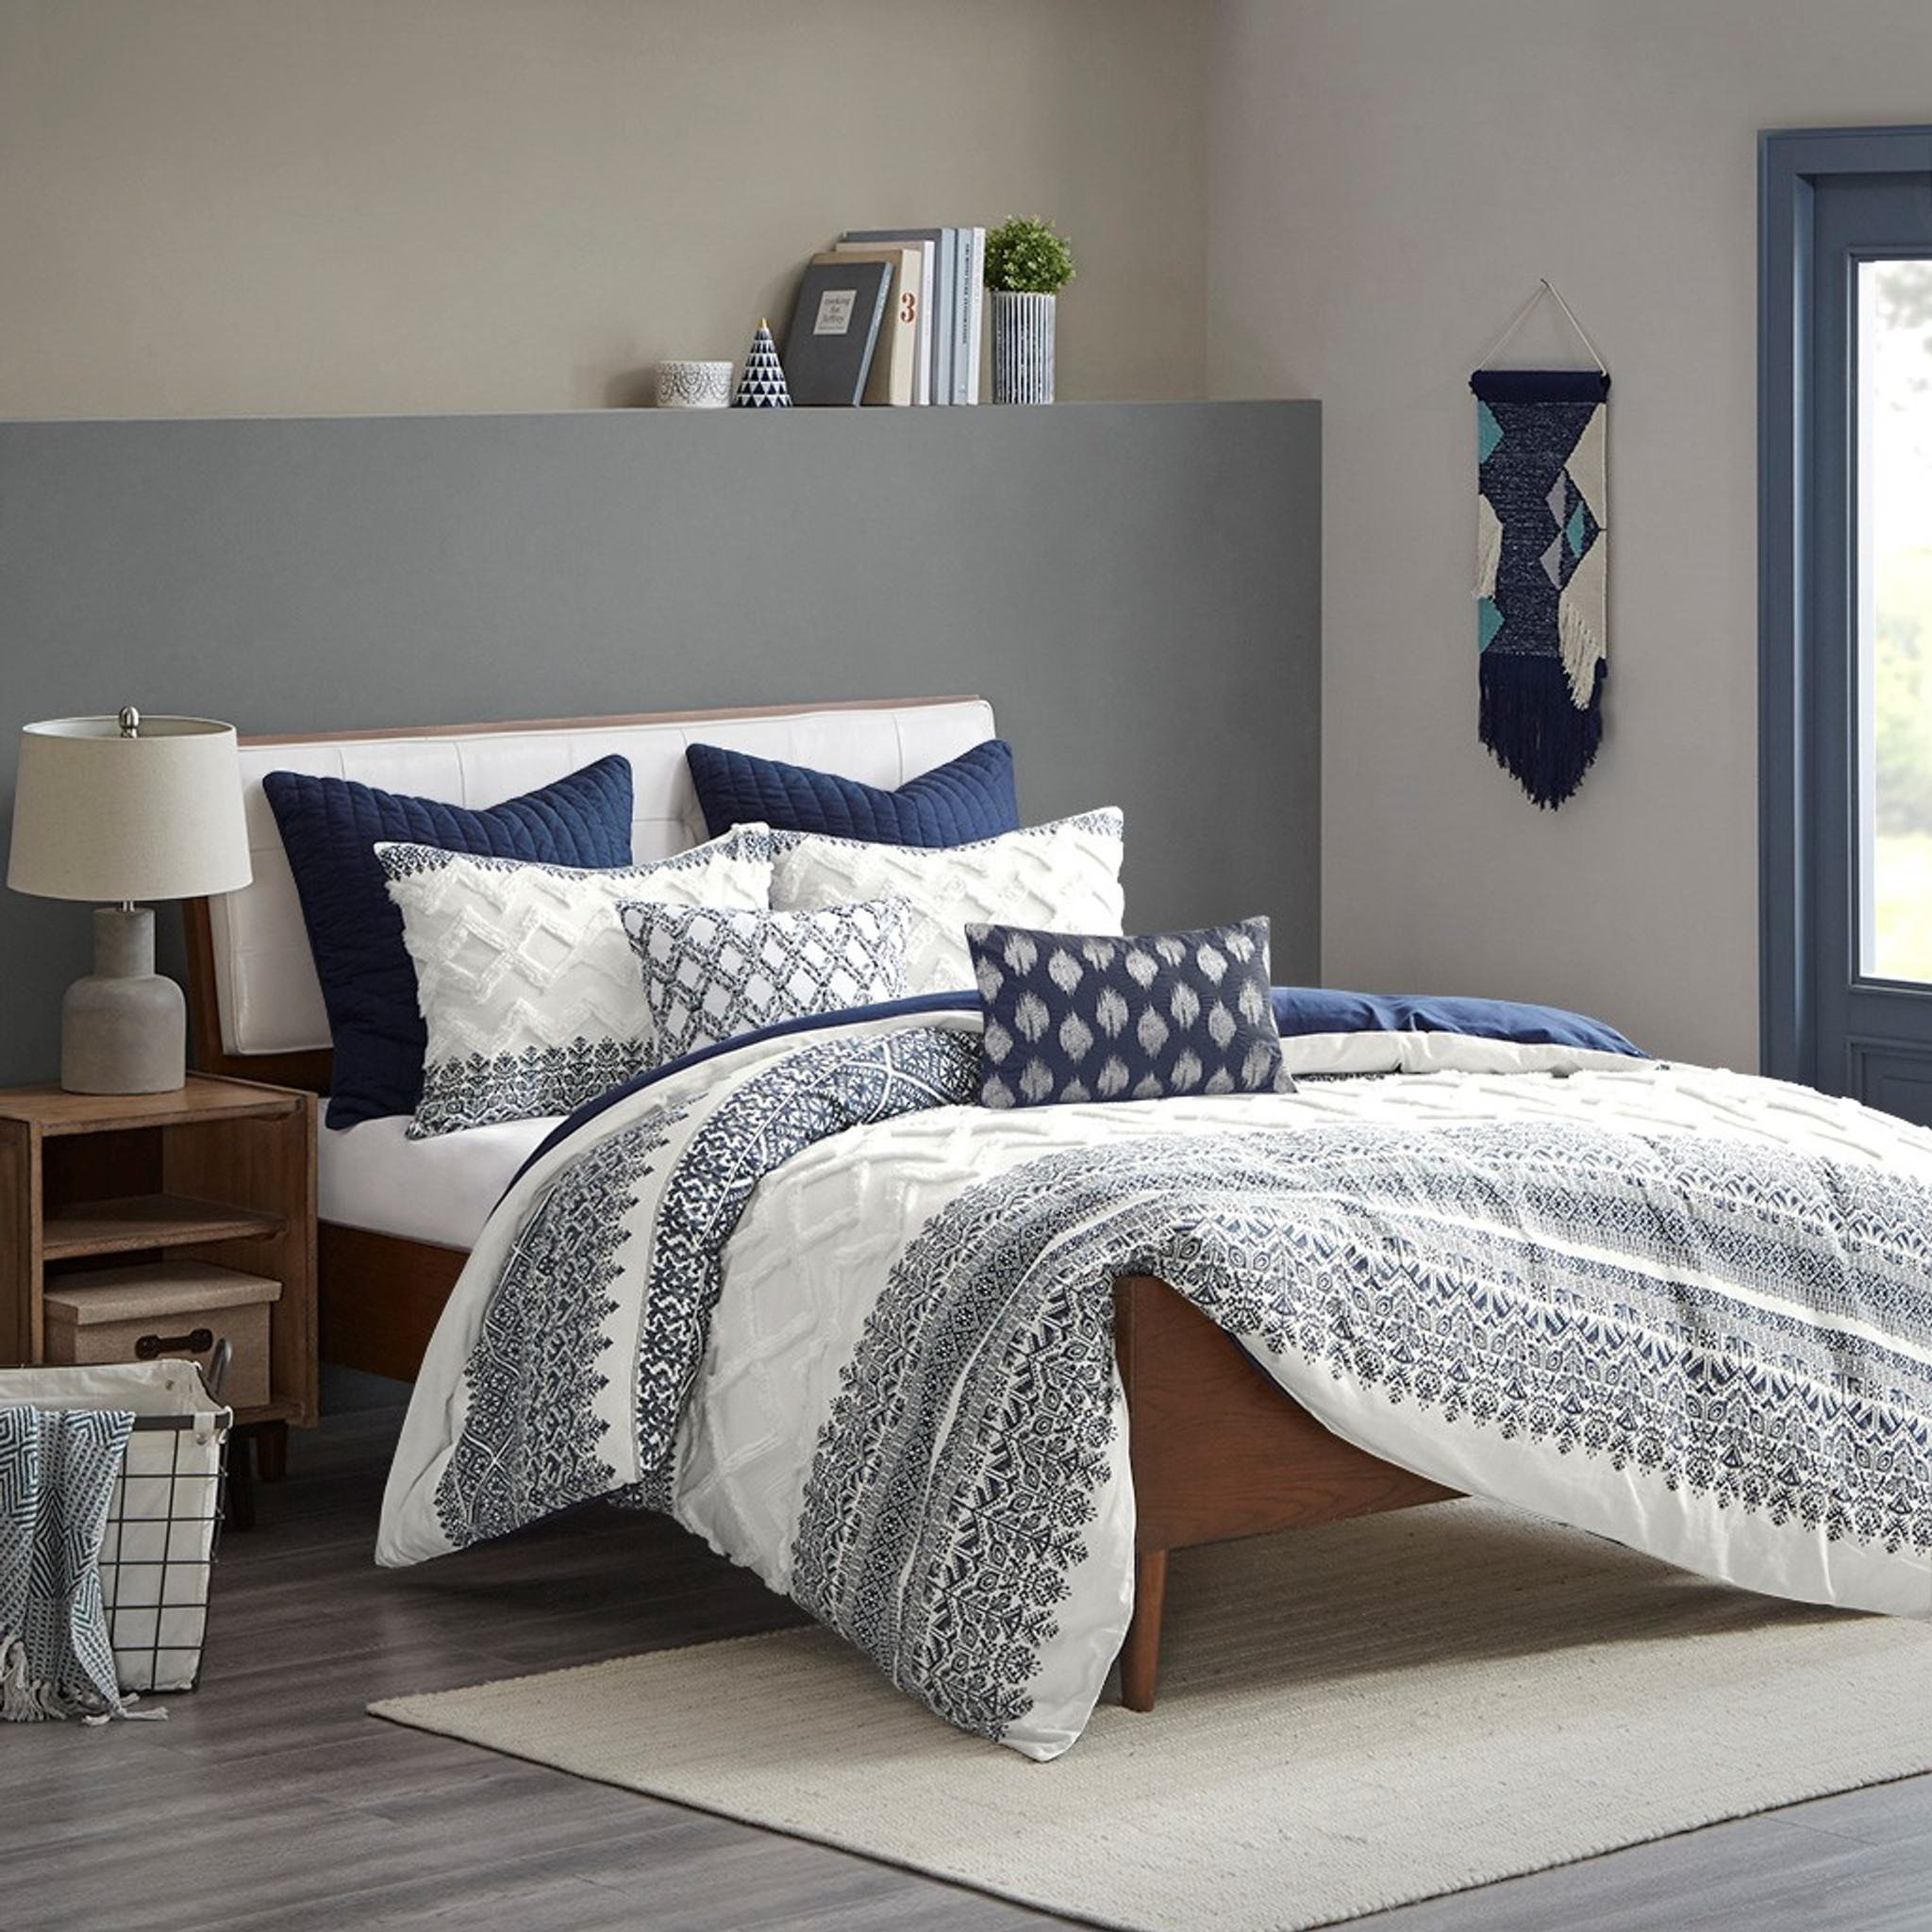 Malibu Boho Navy And White Comforter Set Queen Caron S Beach House